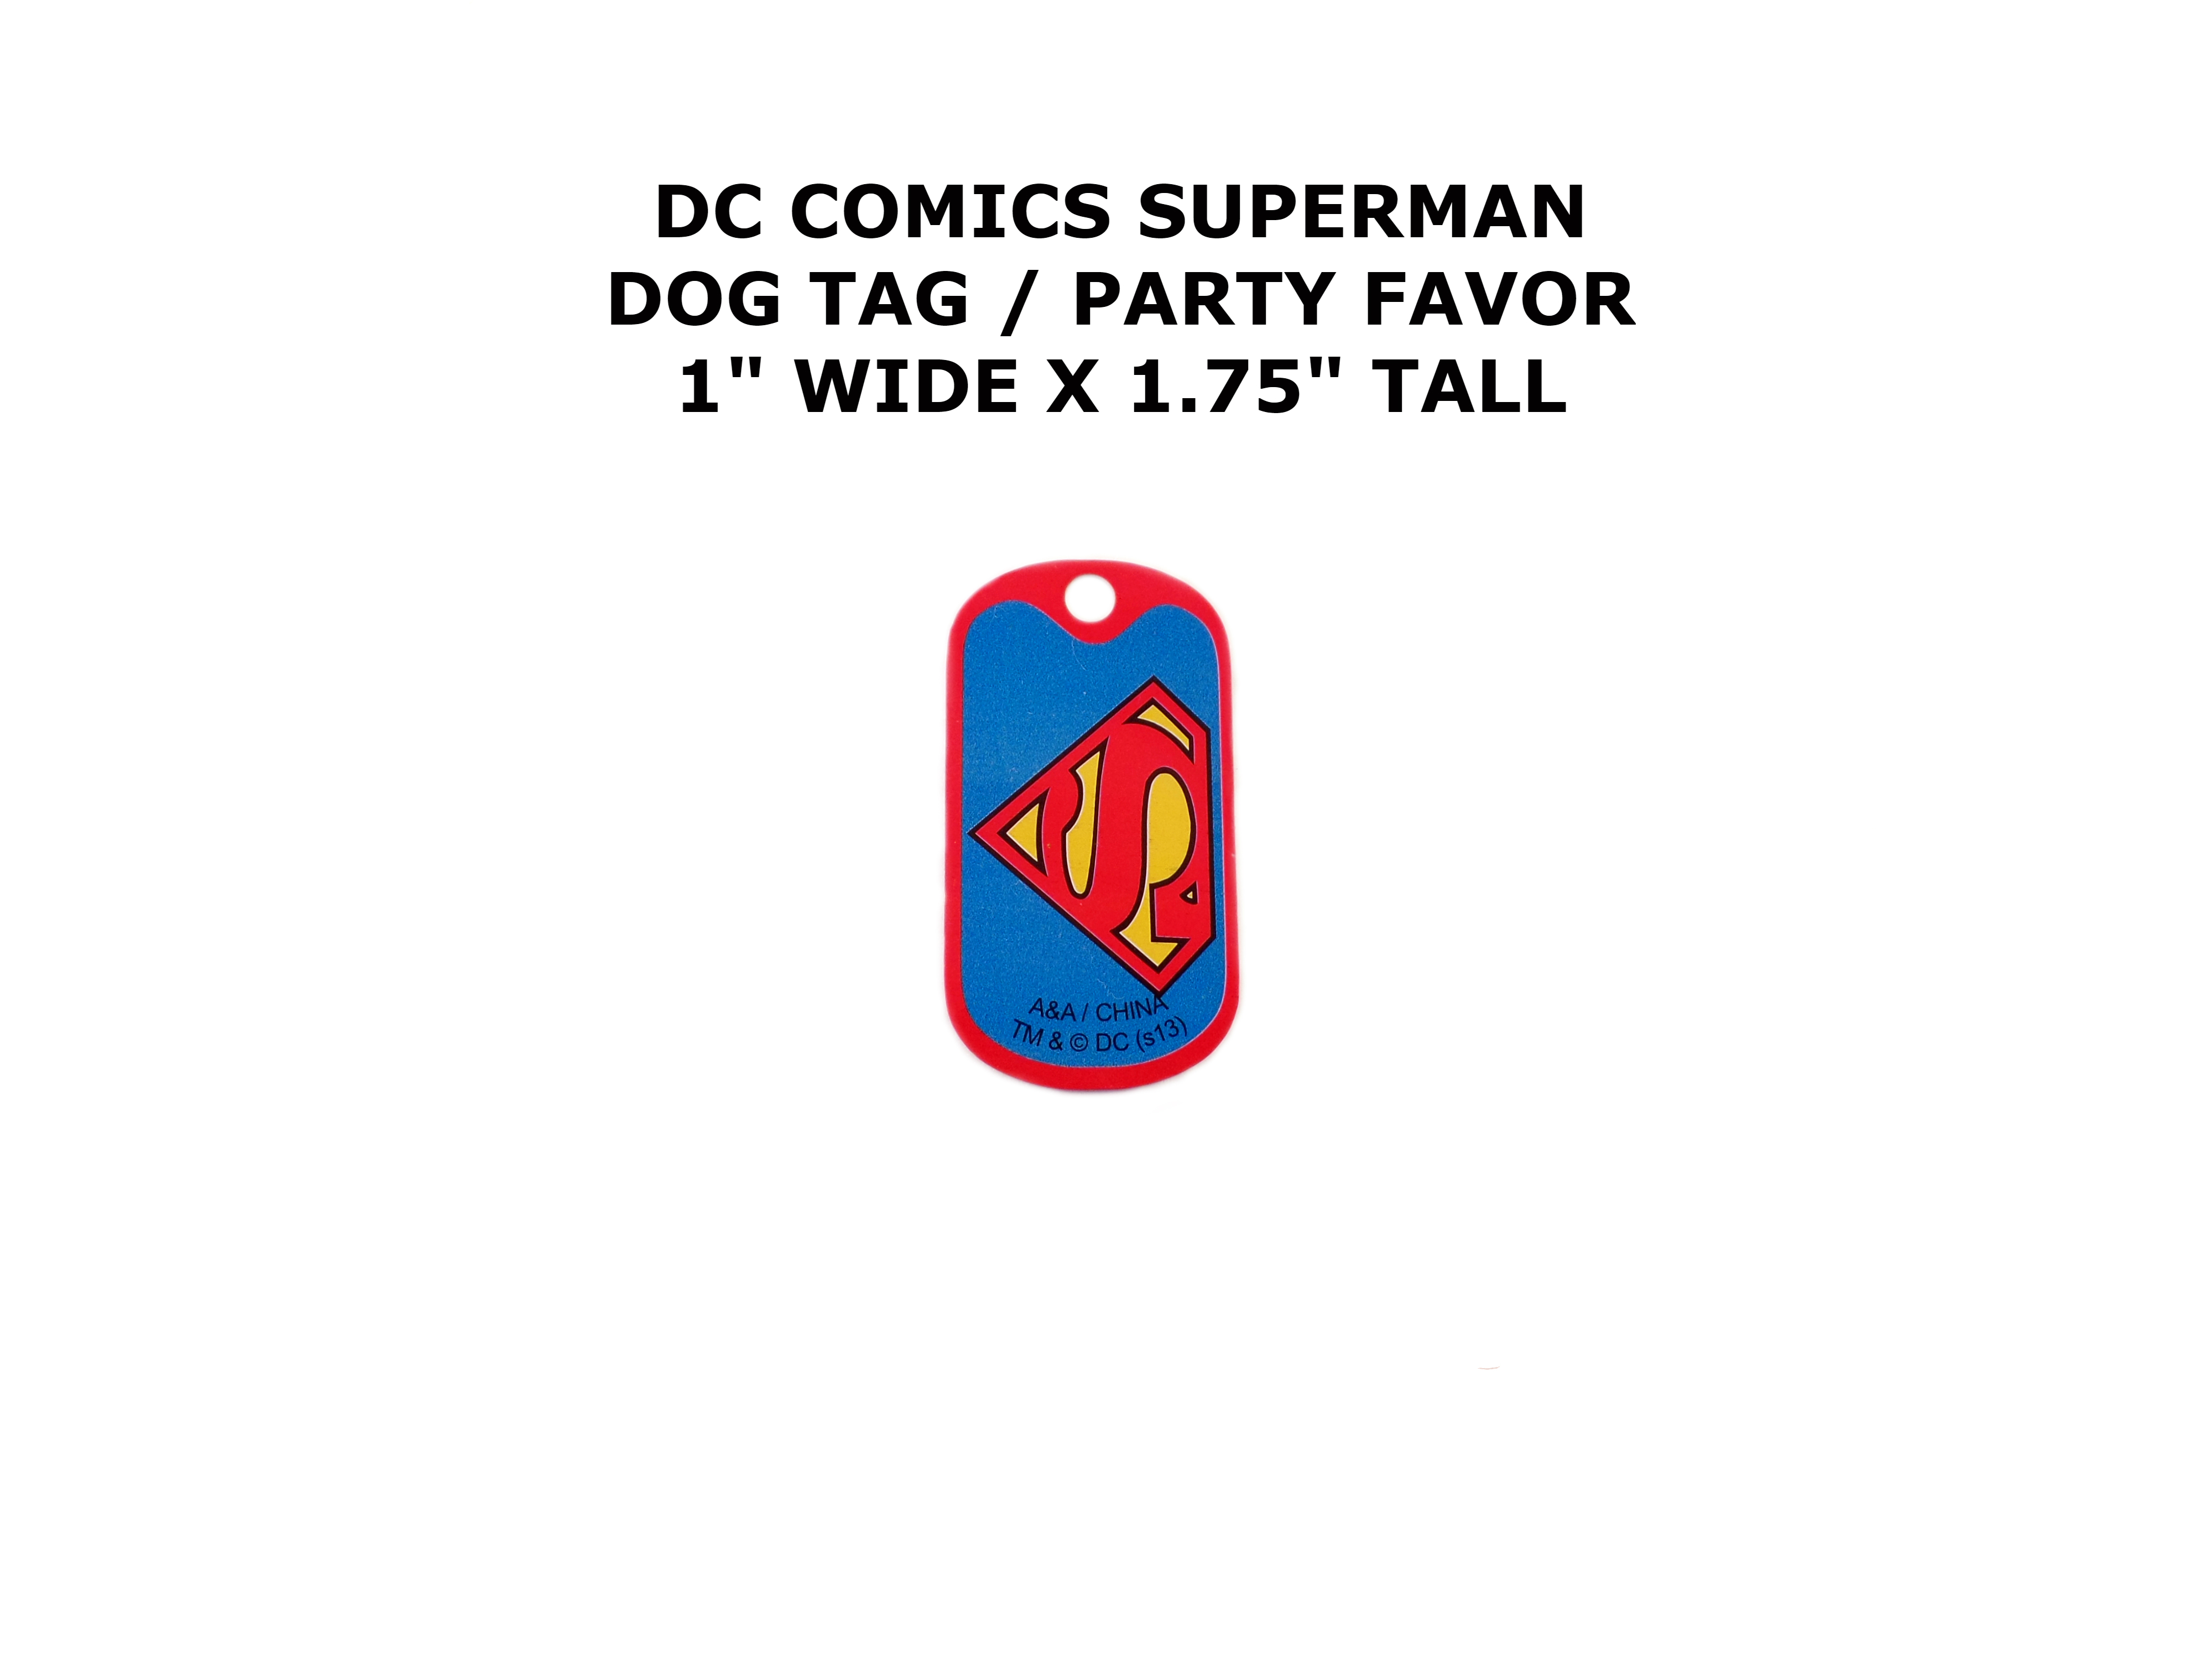 Superman DC Comics Cartoon Theme Logo Dog Tag Necklace Party Favor ...